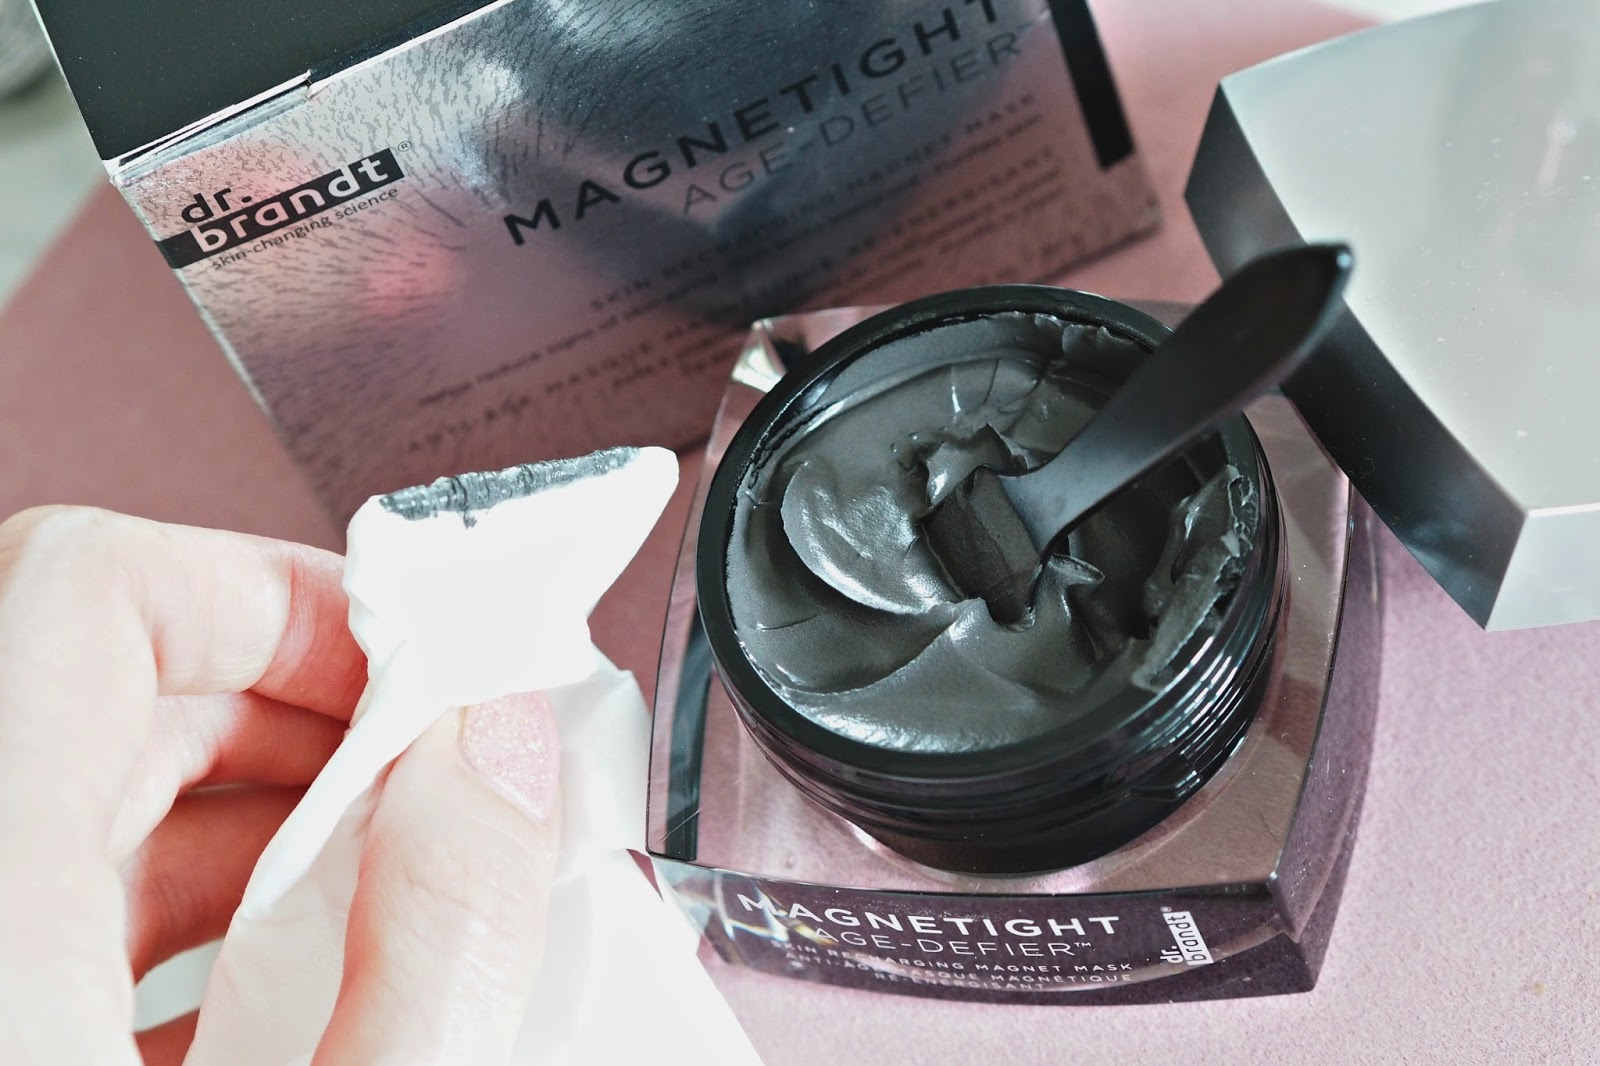 Dr Brandt Magnetight magnet face mask review